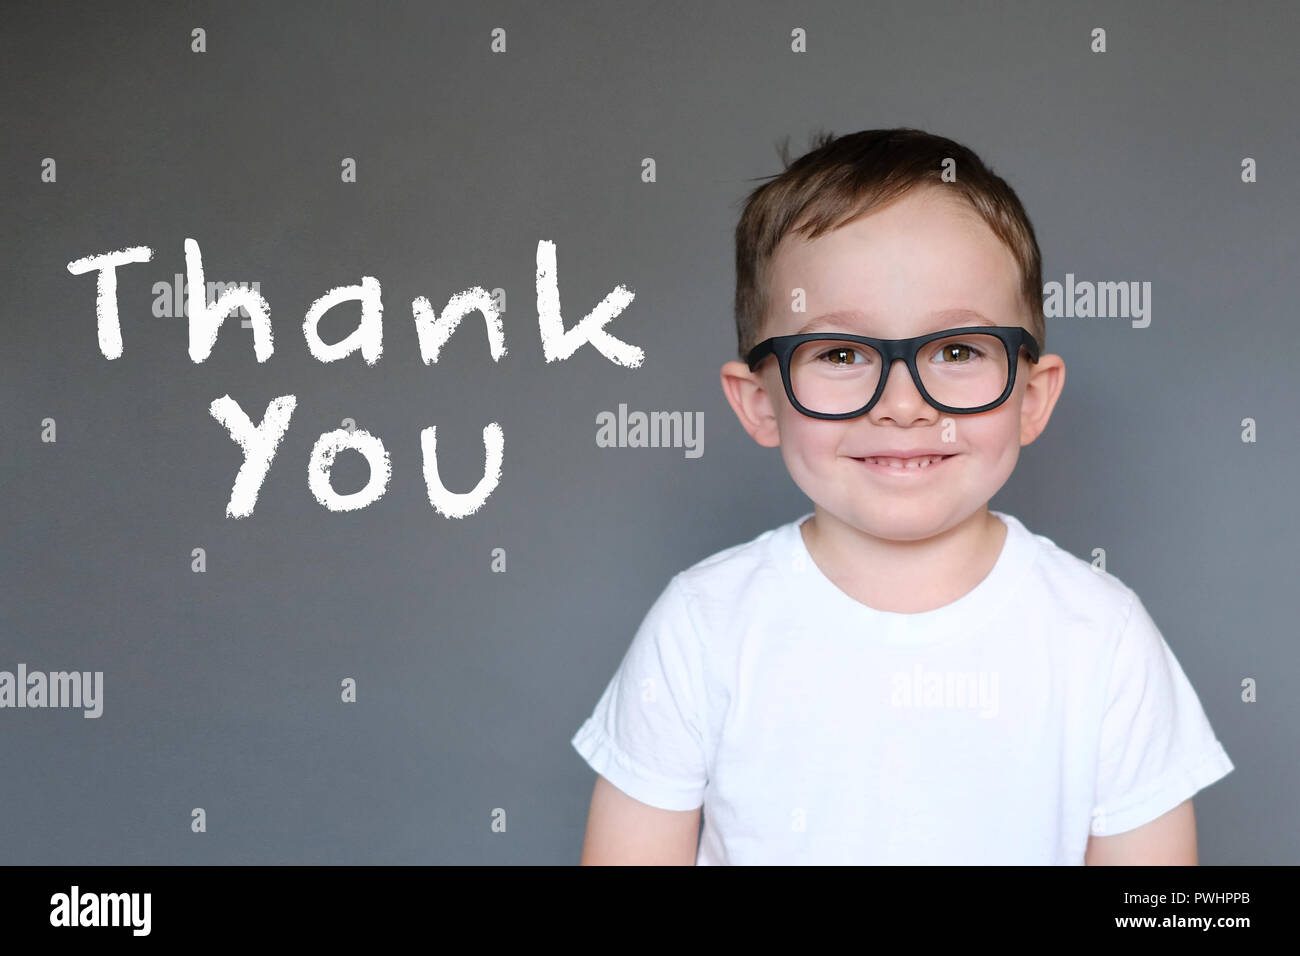 Cute Kid avec un message de remerciement Photo Stock